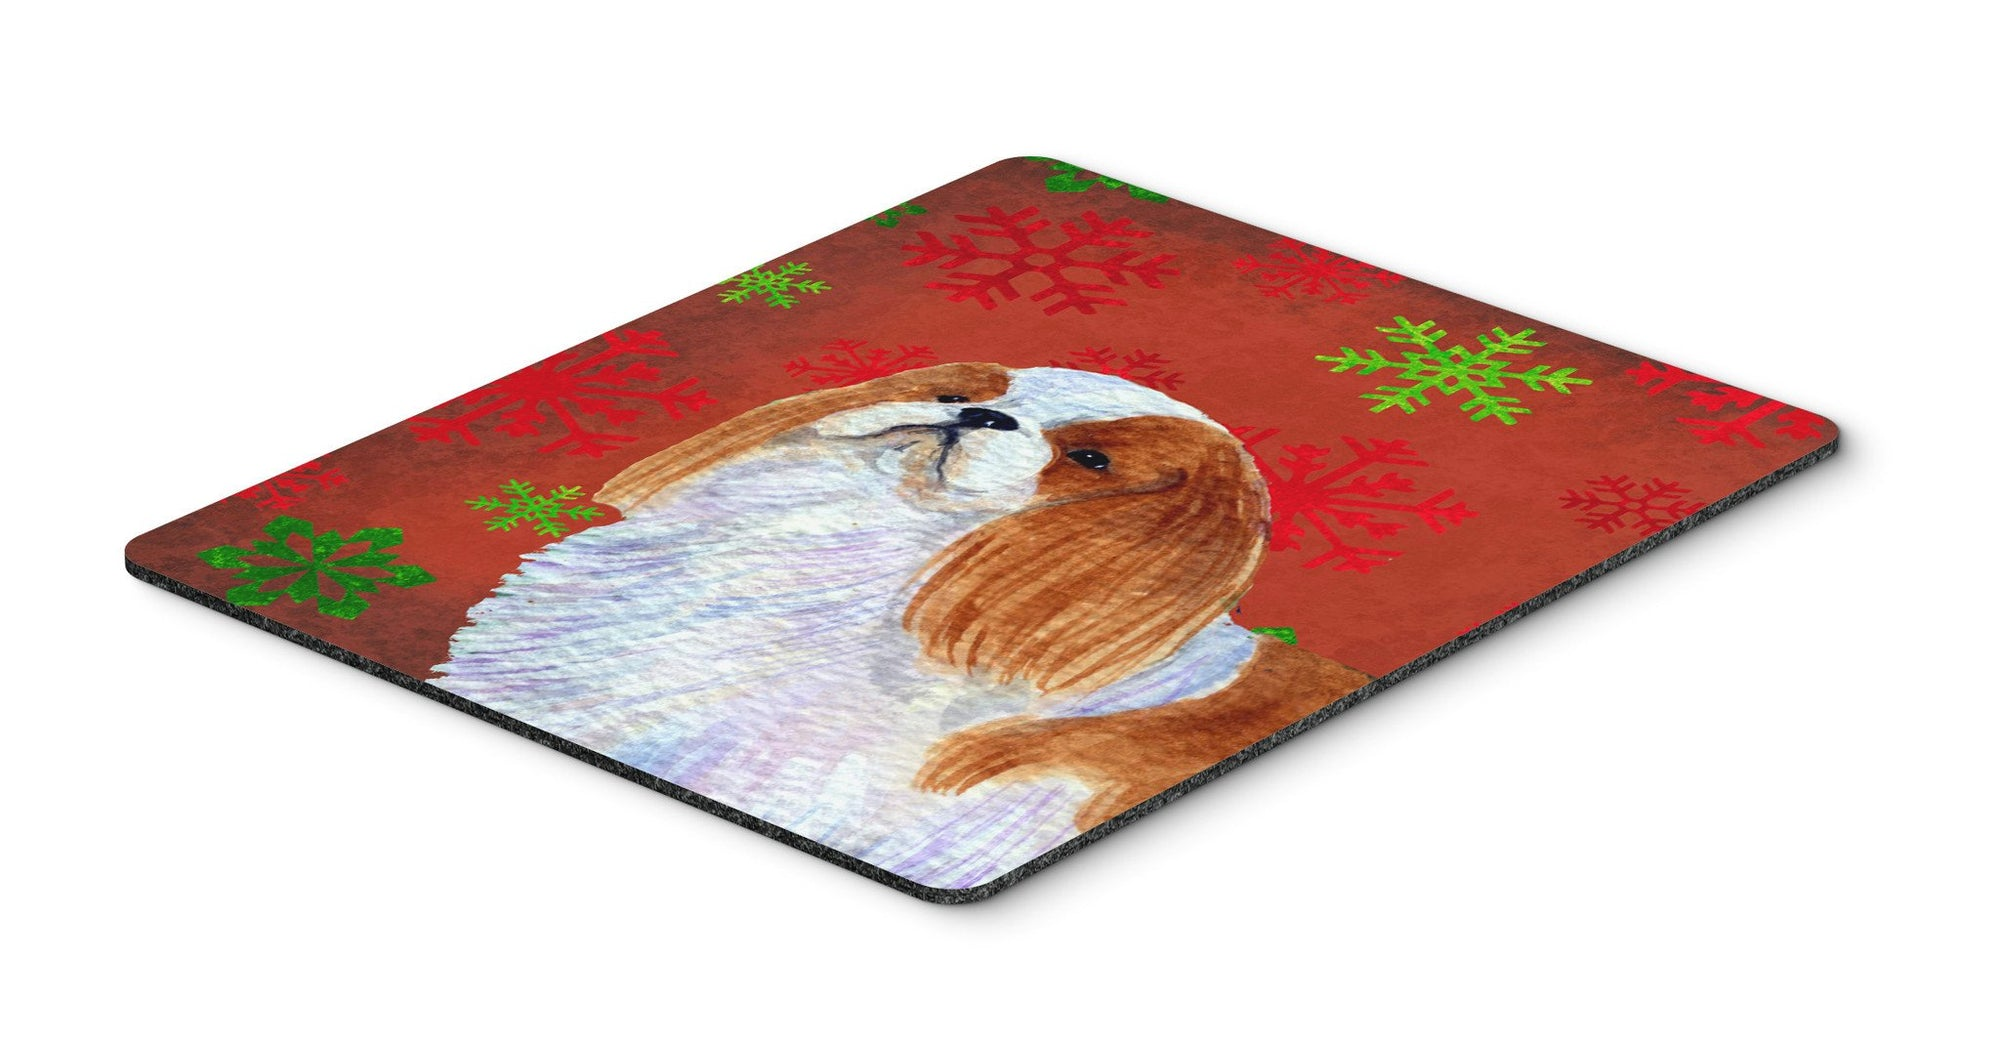 English Toy Spaniel Snowflakes Holiday Christmas Mouse Pad, Hot Pad or Trivet by Caroline's Treasures